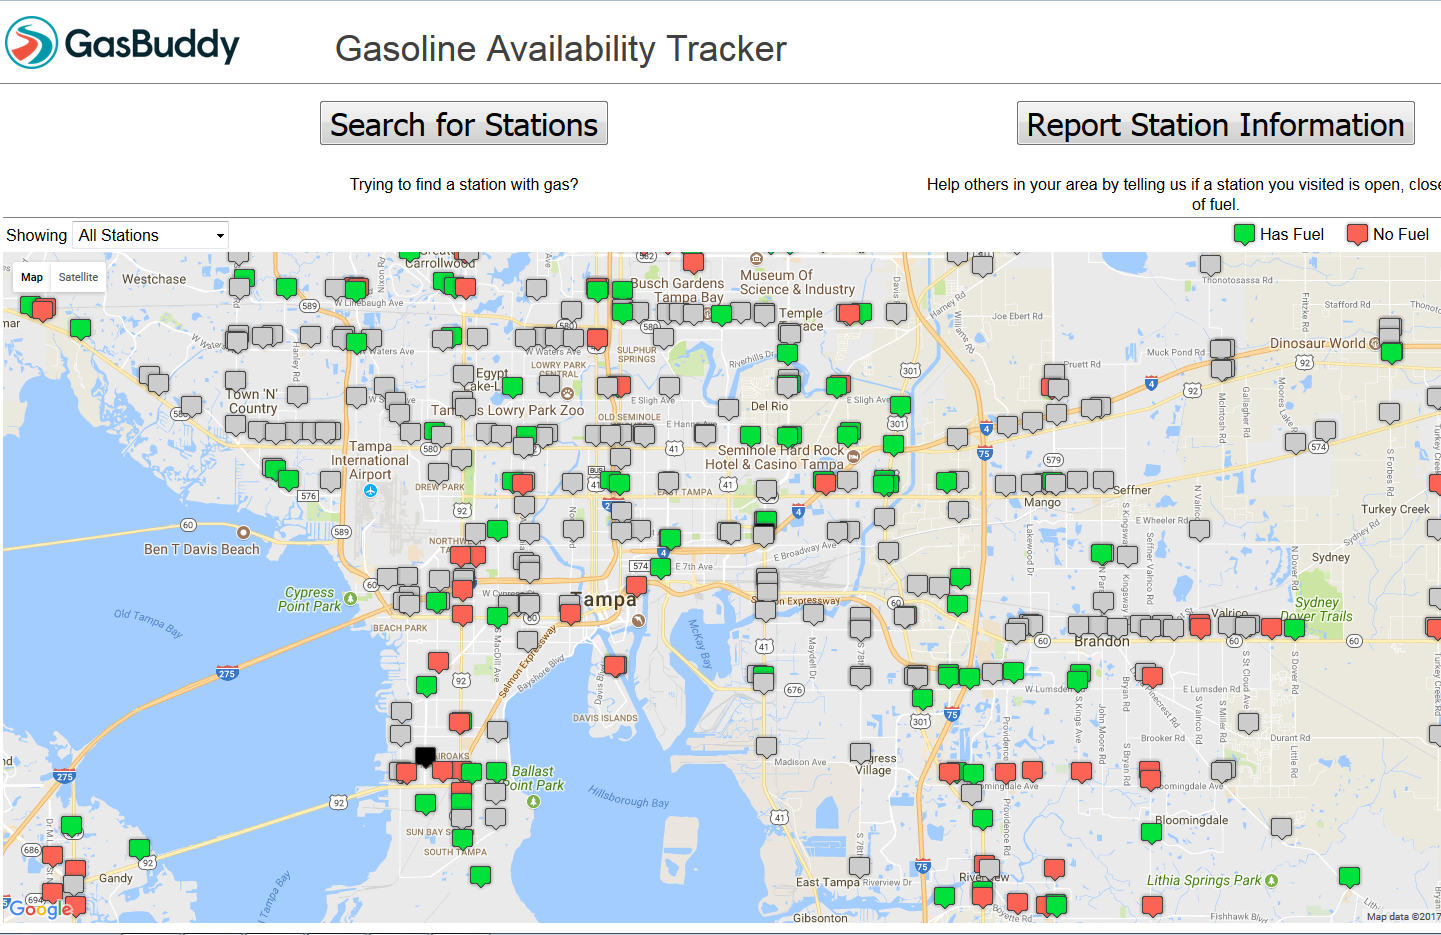 Facing Fuel Shortages, Floridians Can Use 'Gas Buddy' App ... on mapquest map, craigslist map, microsoft map, rocky mountain crude pipeline map, starbucks map, pal codes map, bank of america map, national geographic map, fuel-cost map, google map, disneyland hong kong map, target map, evernote map, foreign military sales country map,